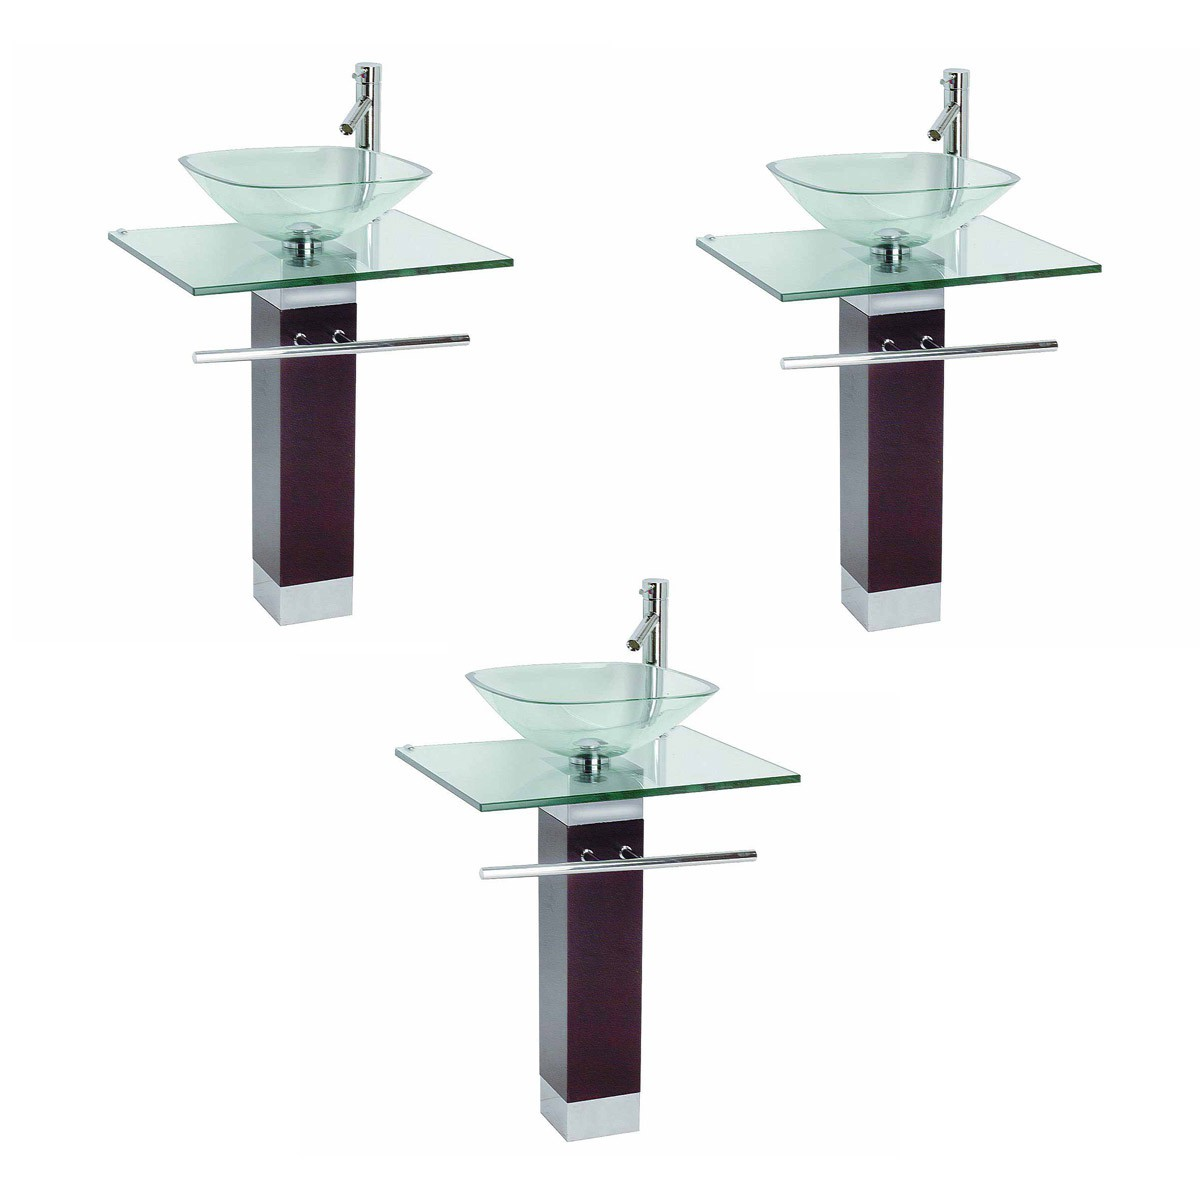 Tempered Glass Pedestal Sink Chrome Faucet Towel Bar And Drain Combo Set Of  3